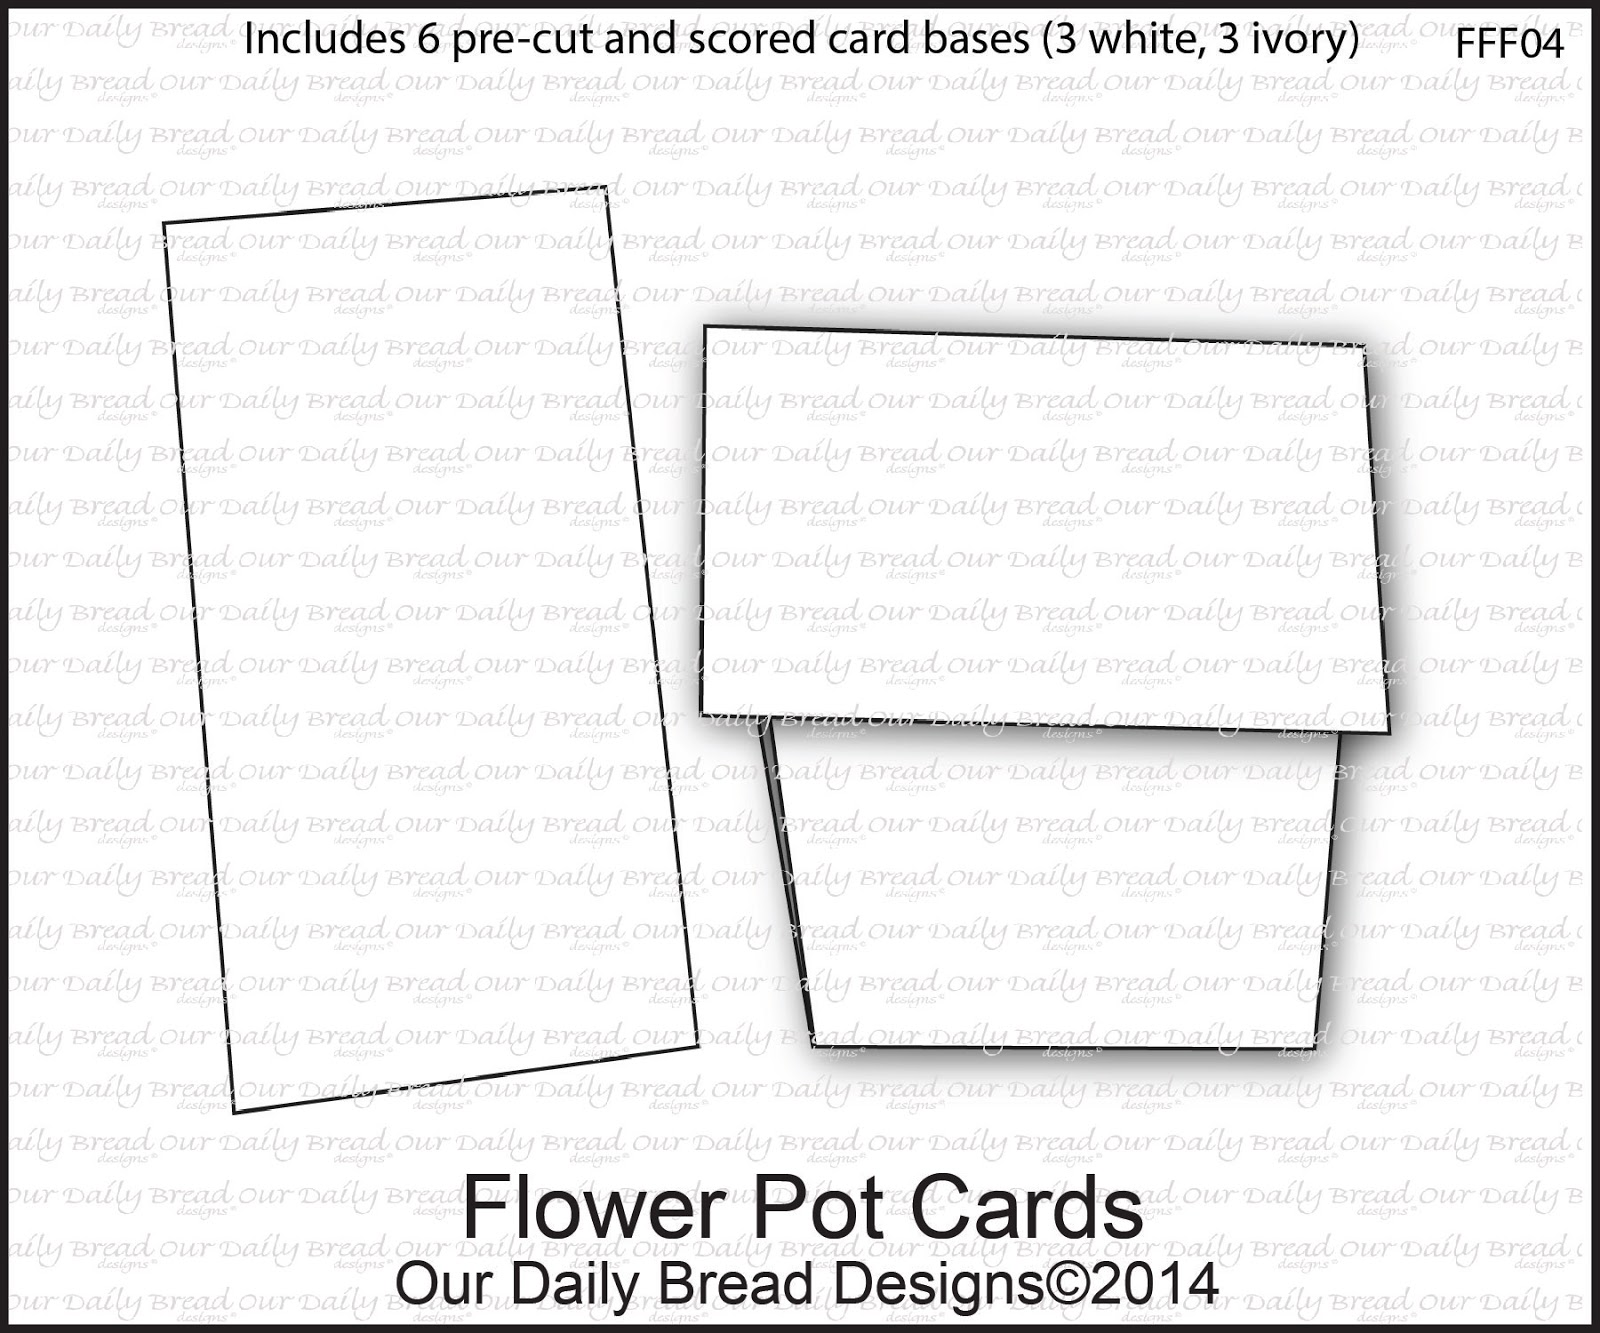 Our Daily Bread Designs Flower Pot Cards - Includes 6 pre-cut and scored card bases (3 White, 3 Ivory)